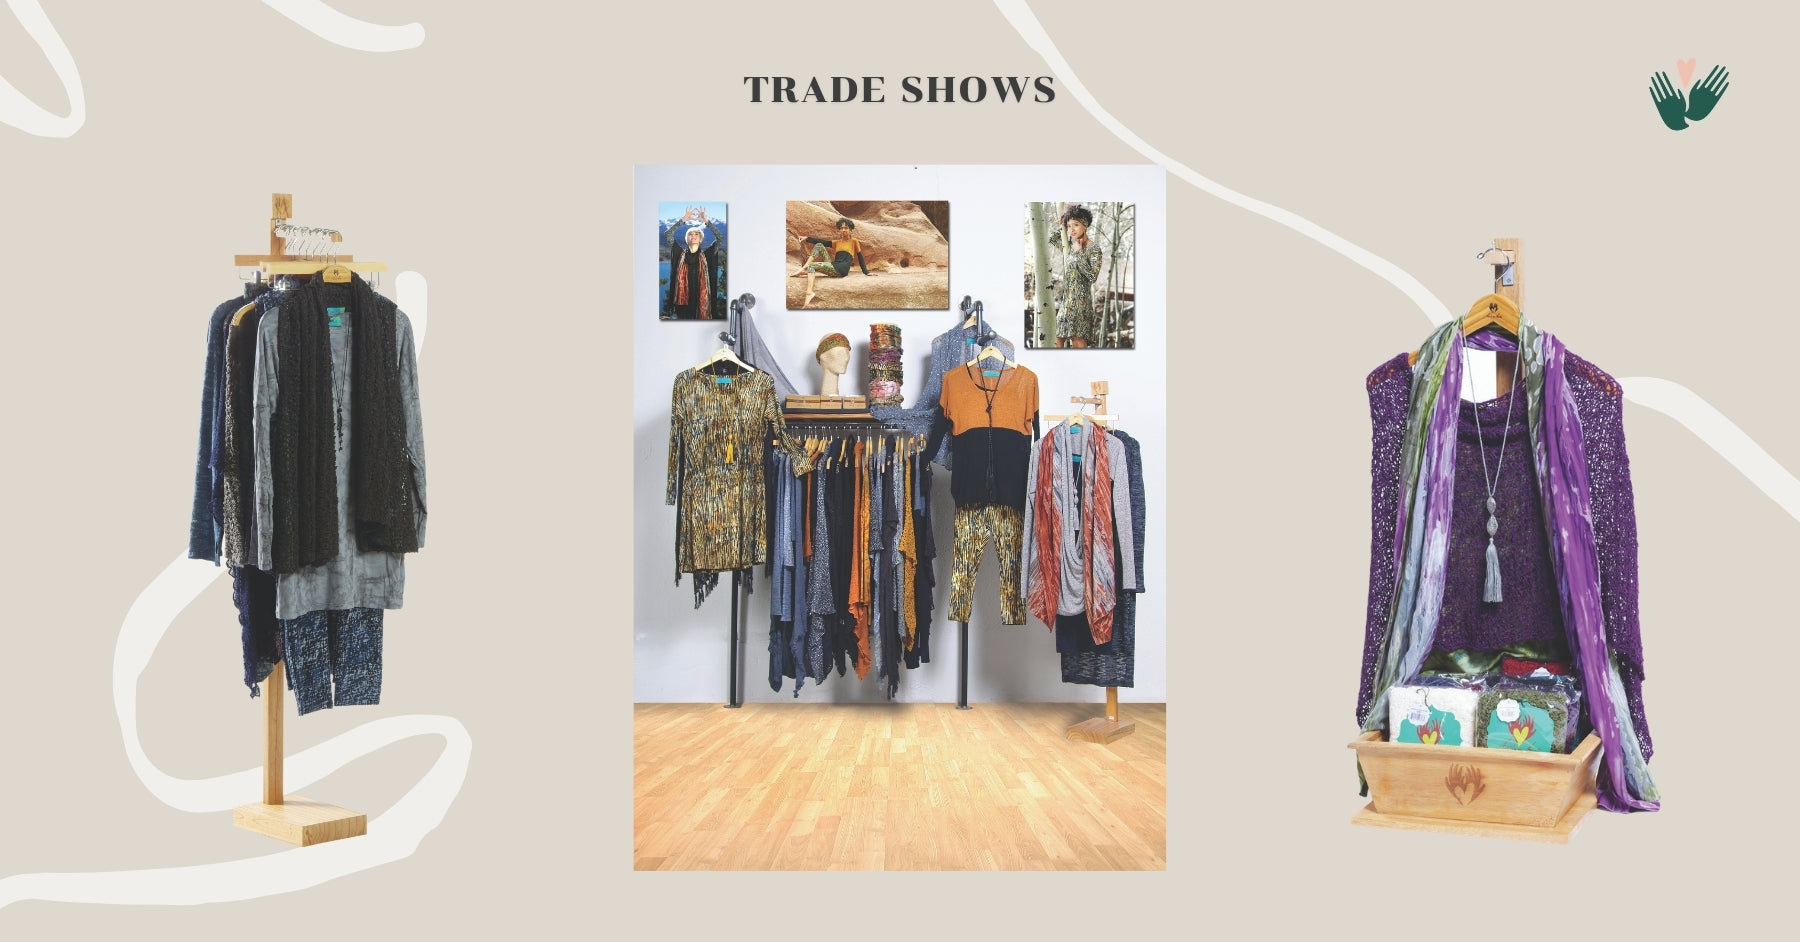 Our clothing presented on nice racks for the trade shows